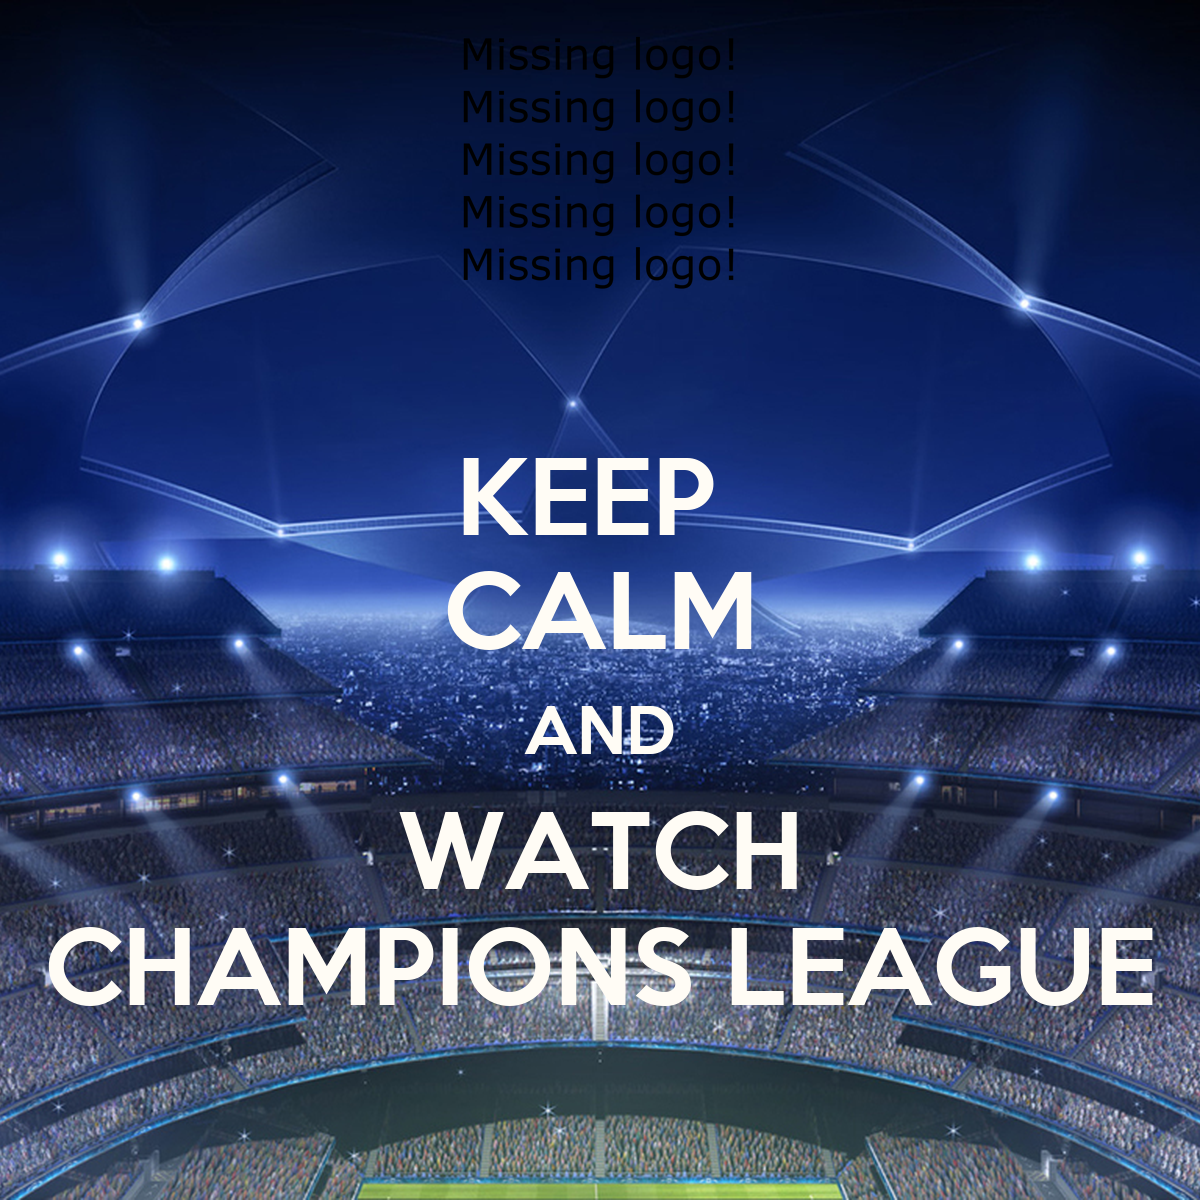 Champions League: KEEP CALM AND WATCH CHAMPIONS LEAGUE Poster